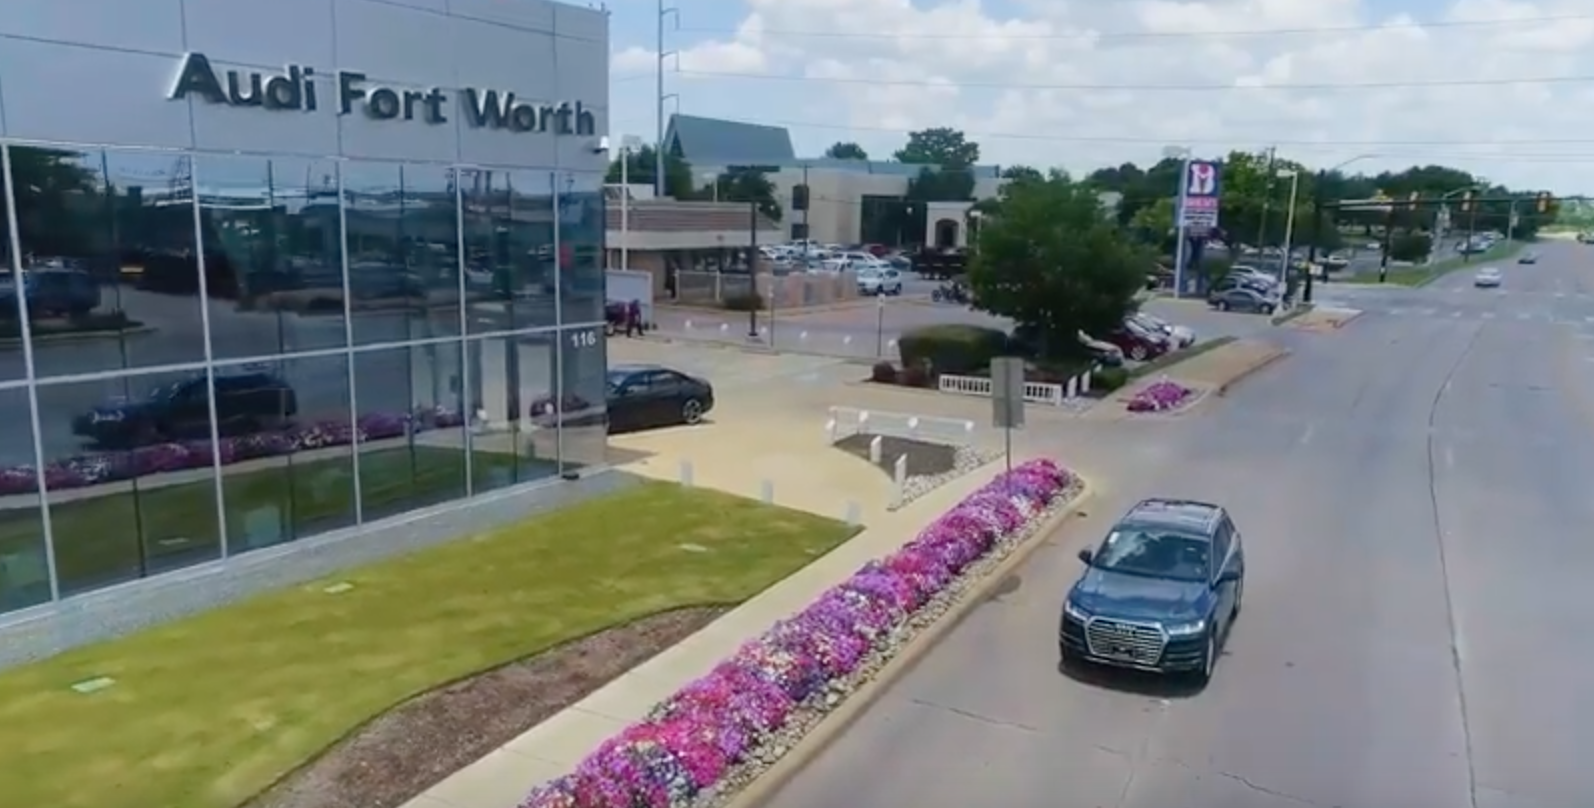 Using Drones For Images And Video Ft Worth TX - Audi car commercial